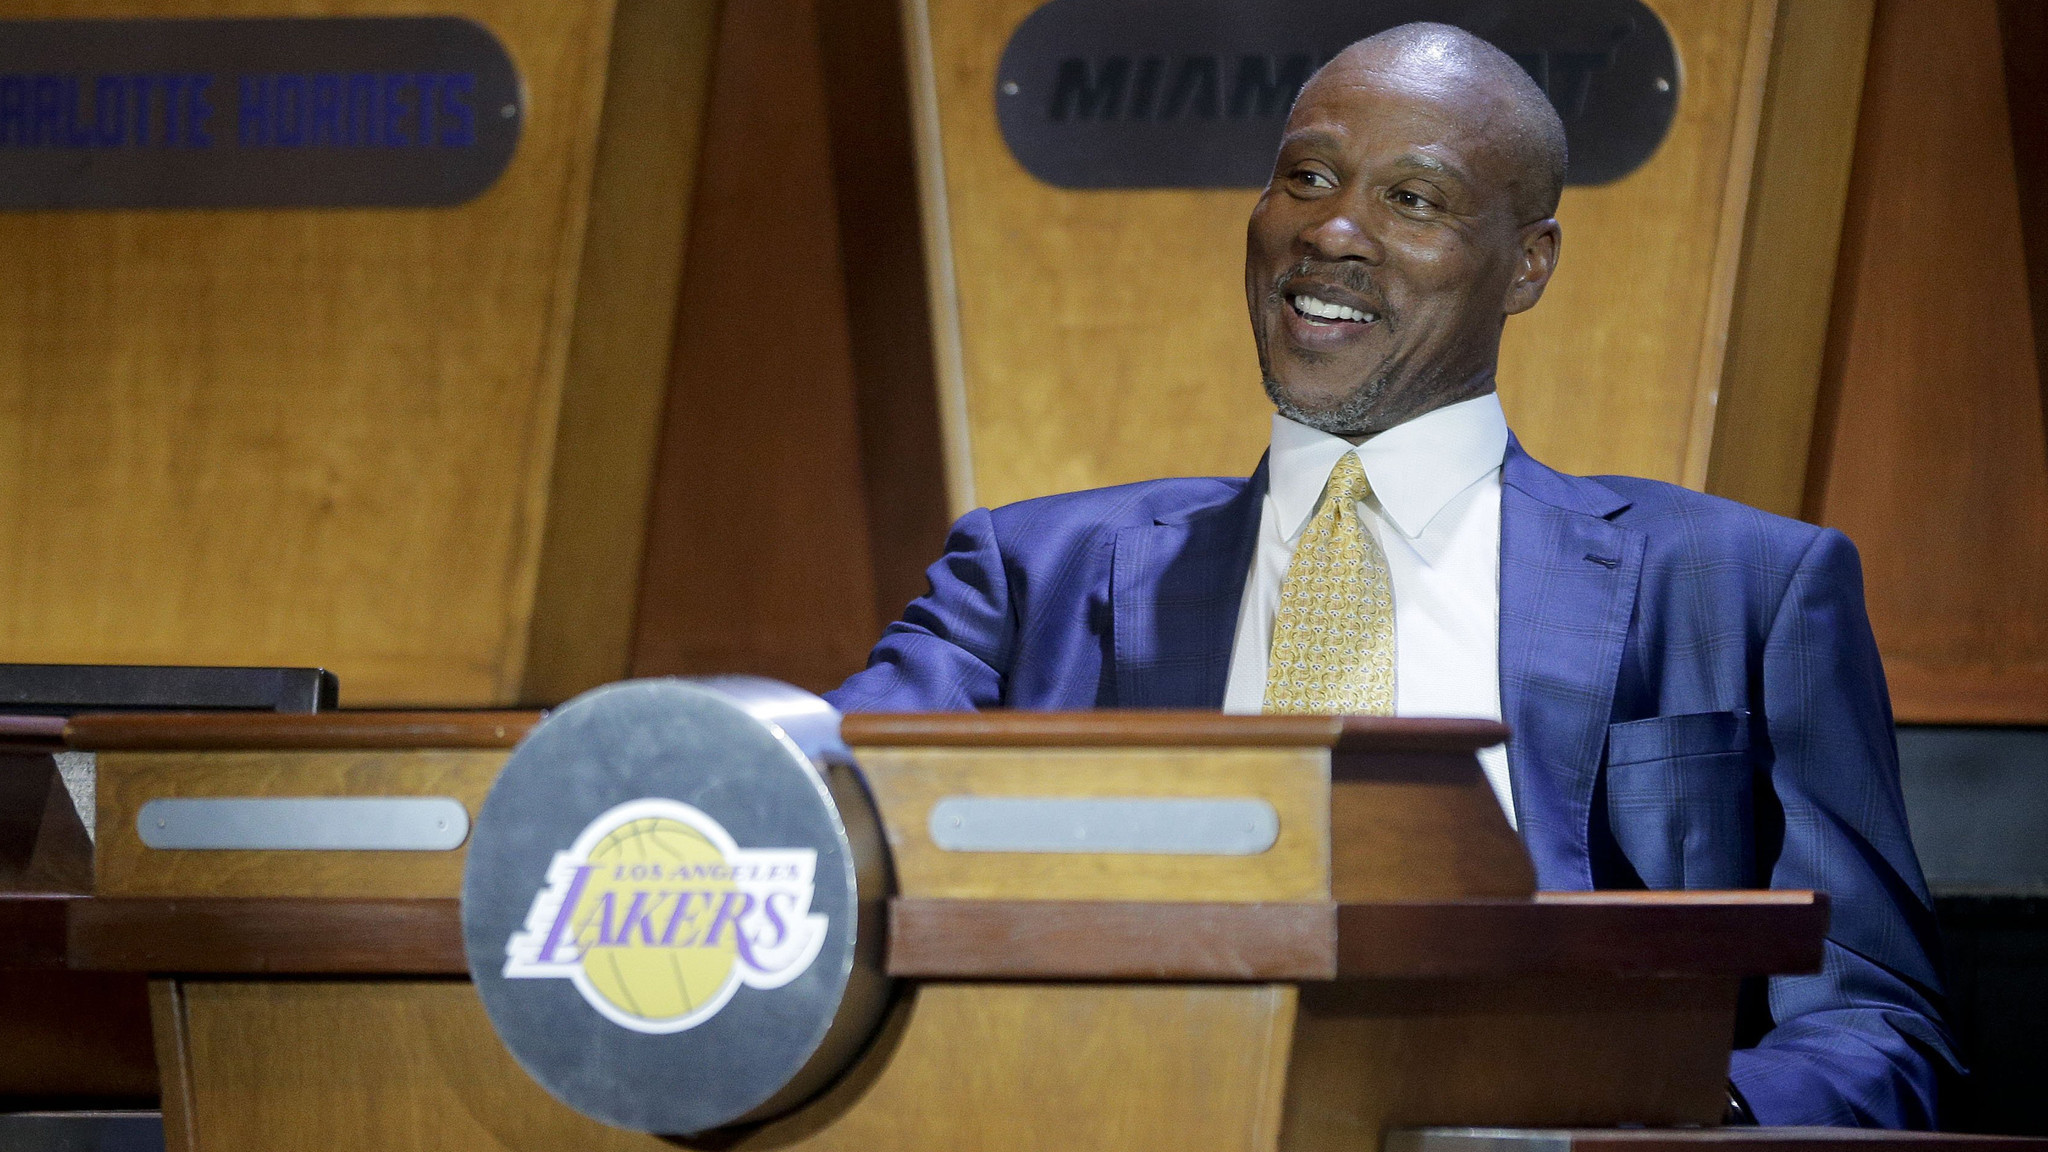 ... lucky number comes up in NBA draft lottery with No. 2 pick - LA Times